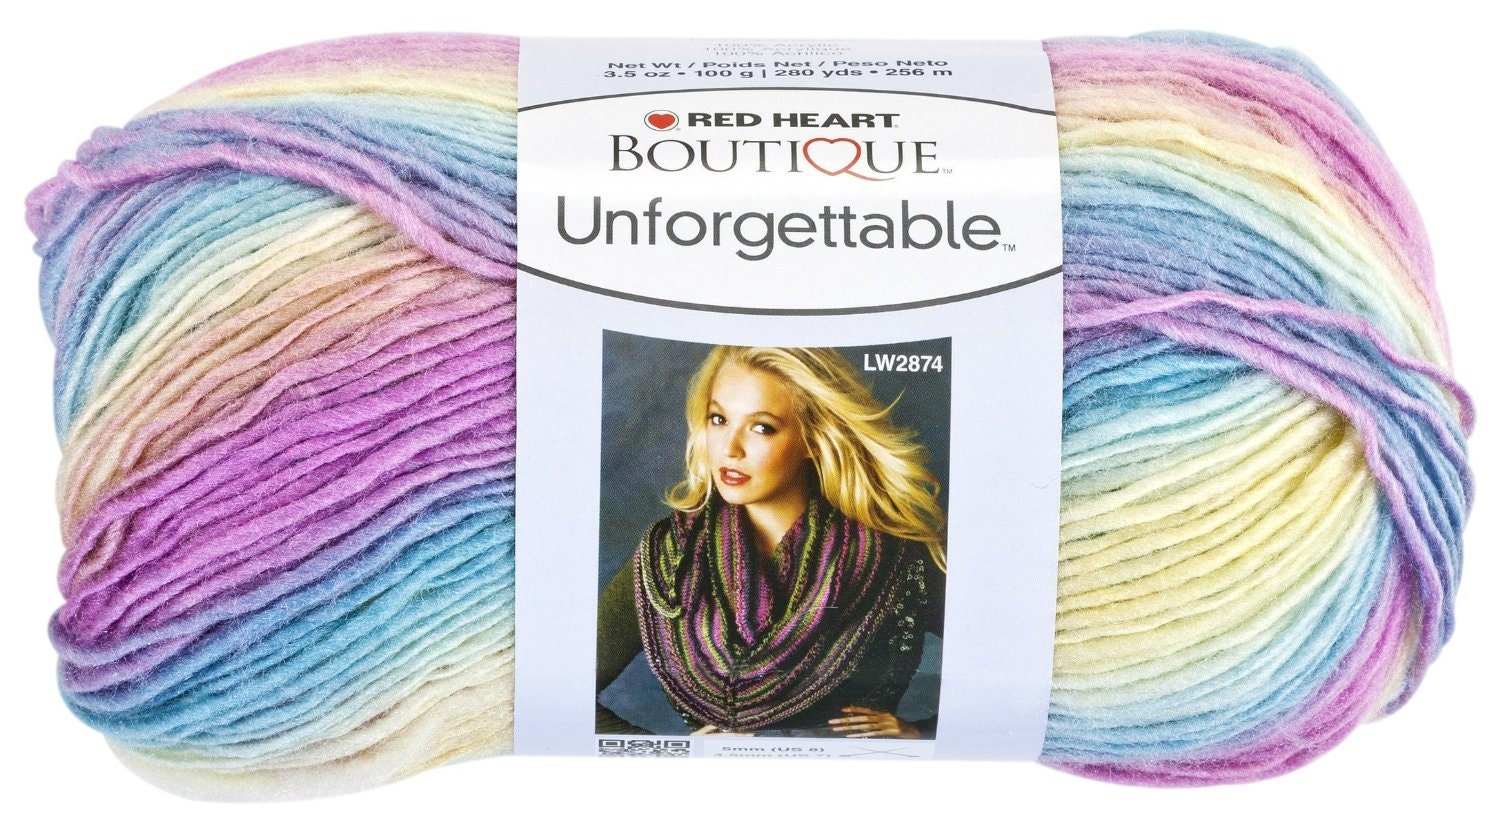 Red Heart Boutique Unforgettable Yarn in Candied Self Striping